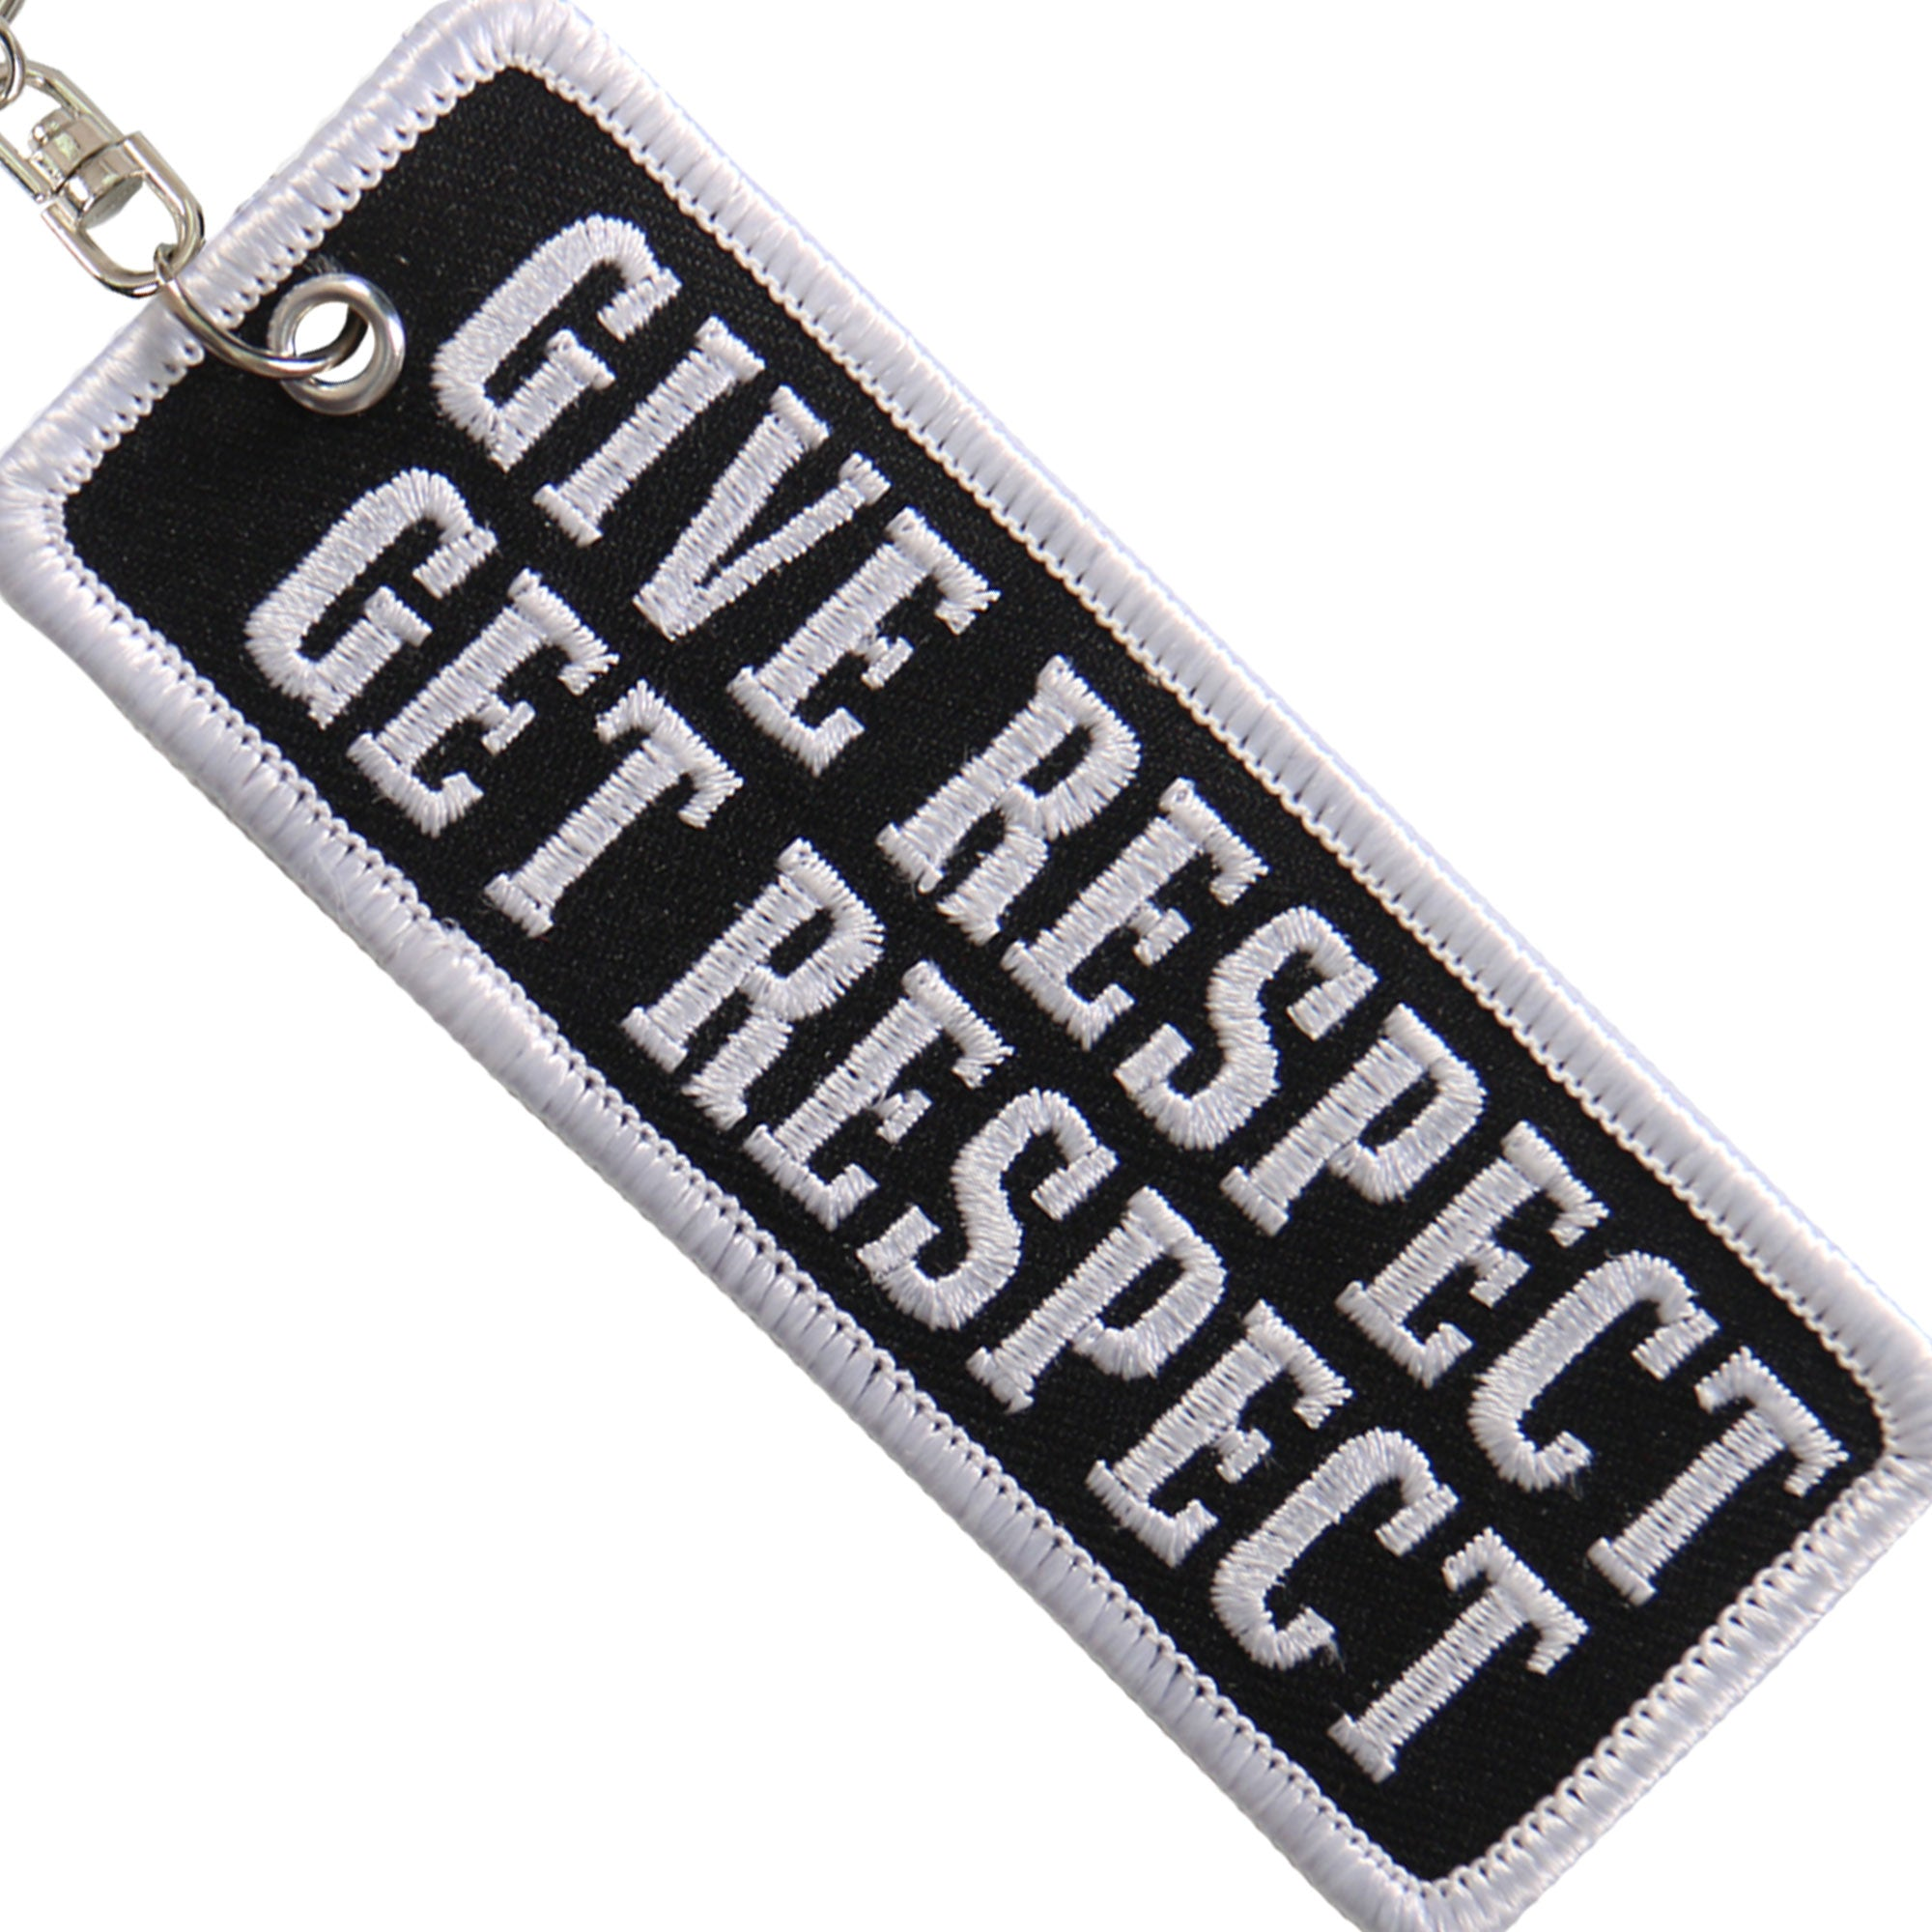 Hot leathers Key Chain Patch Give Respect Get Respect